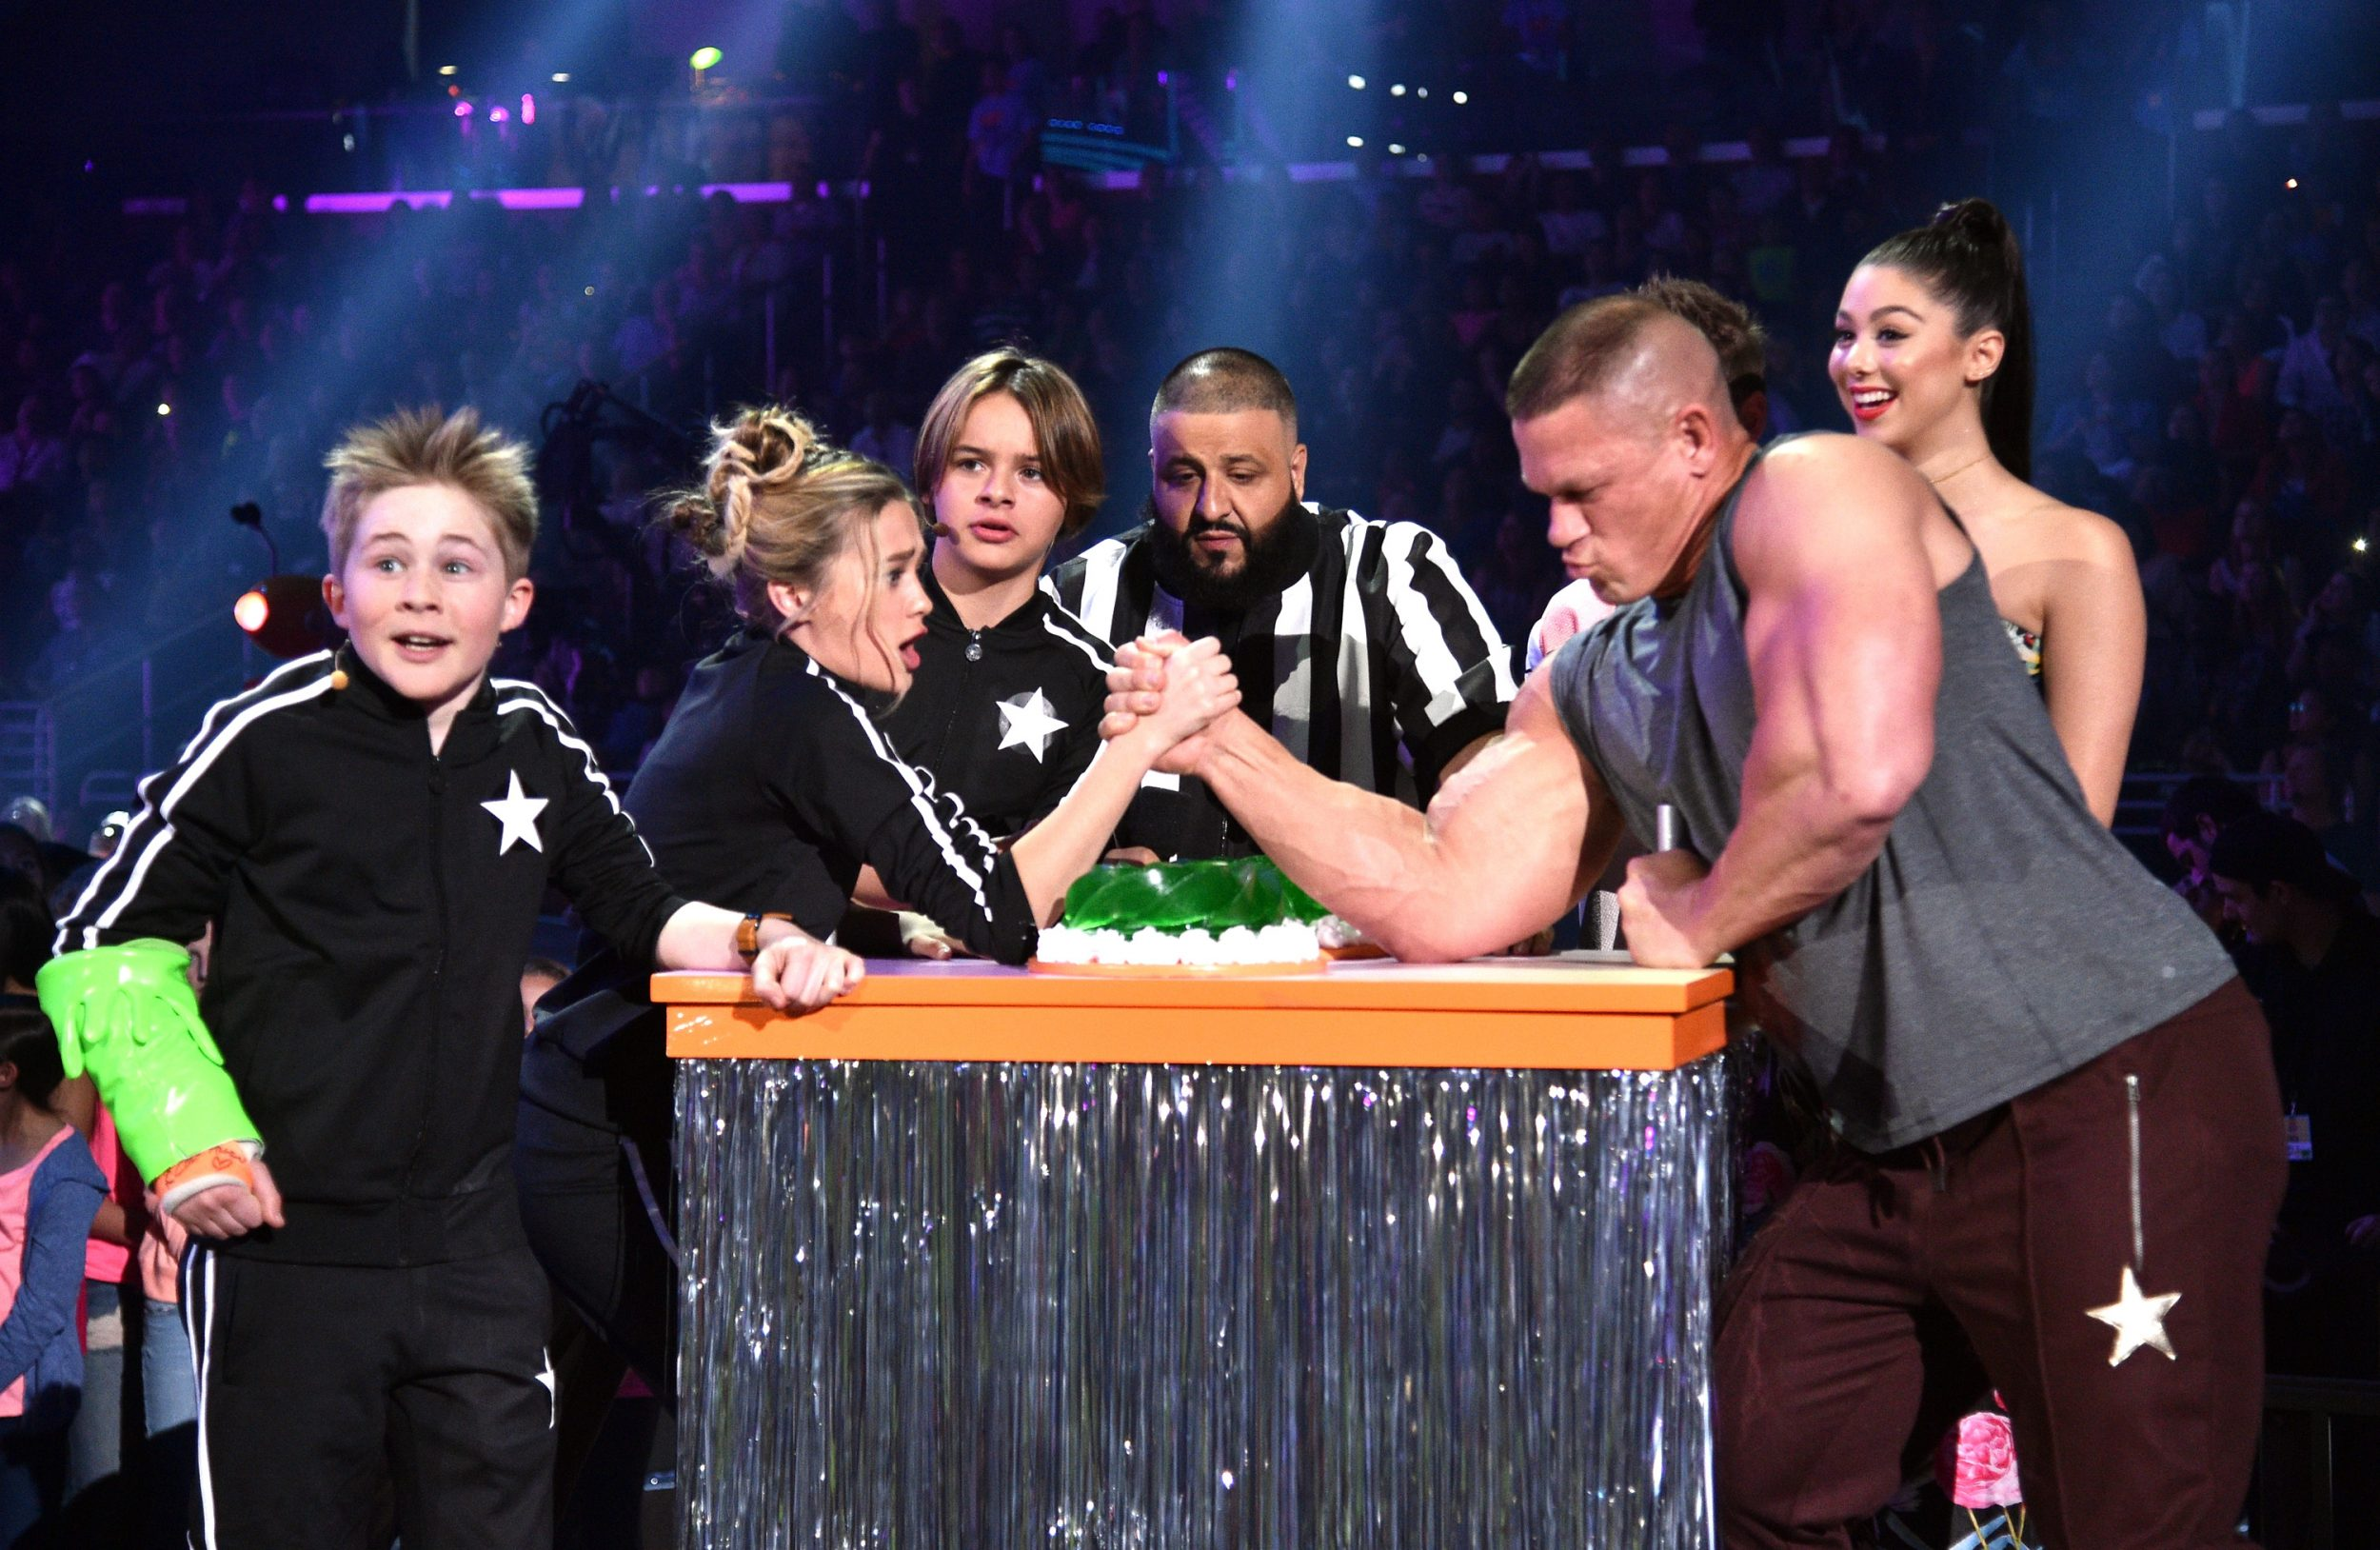 LOS ANGELES, CA - MARCH 11:  The cast of Nicky, Ricky, Dicky & Dawn armwrestle with host John Cena onstage with Dj Khaled at Nickelodeon's 2017 Kids' Choice Awards at USC Galen Center on March 11, 2017 in Los Angeles, California.  (Photo by Kevin Mazur/KCA2017/WireImage - Issued to Media by Nickelodeon)